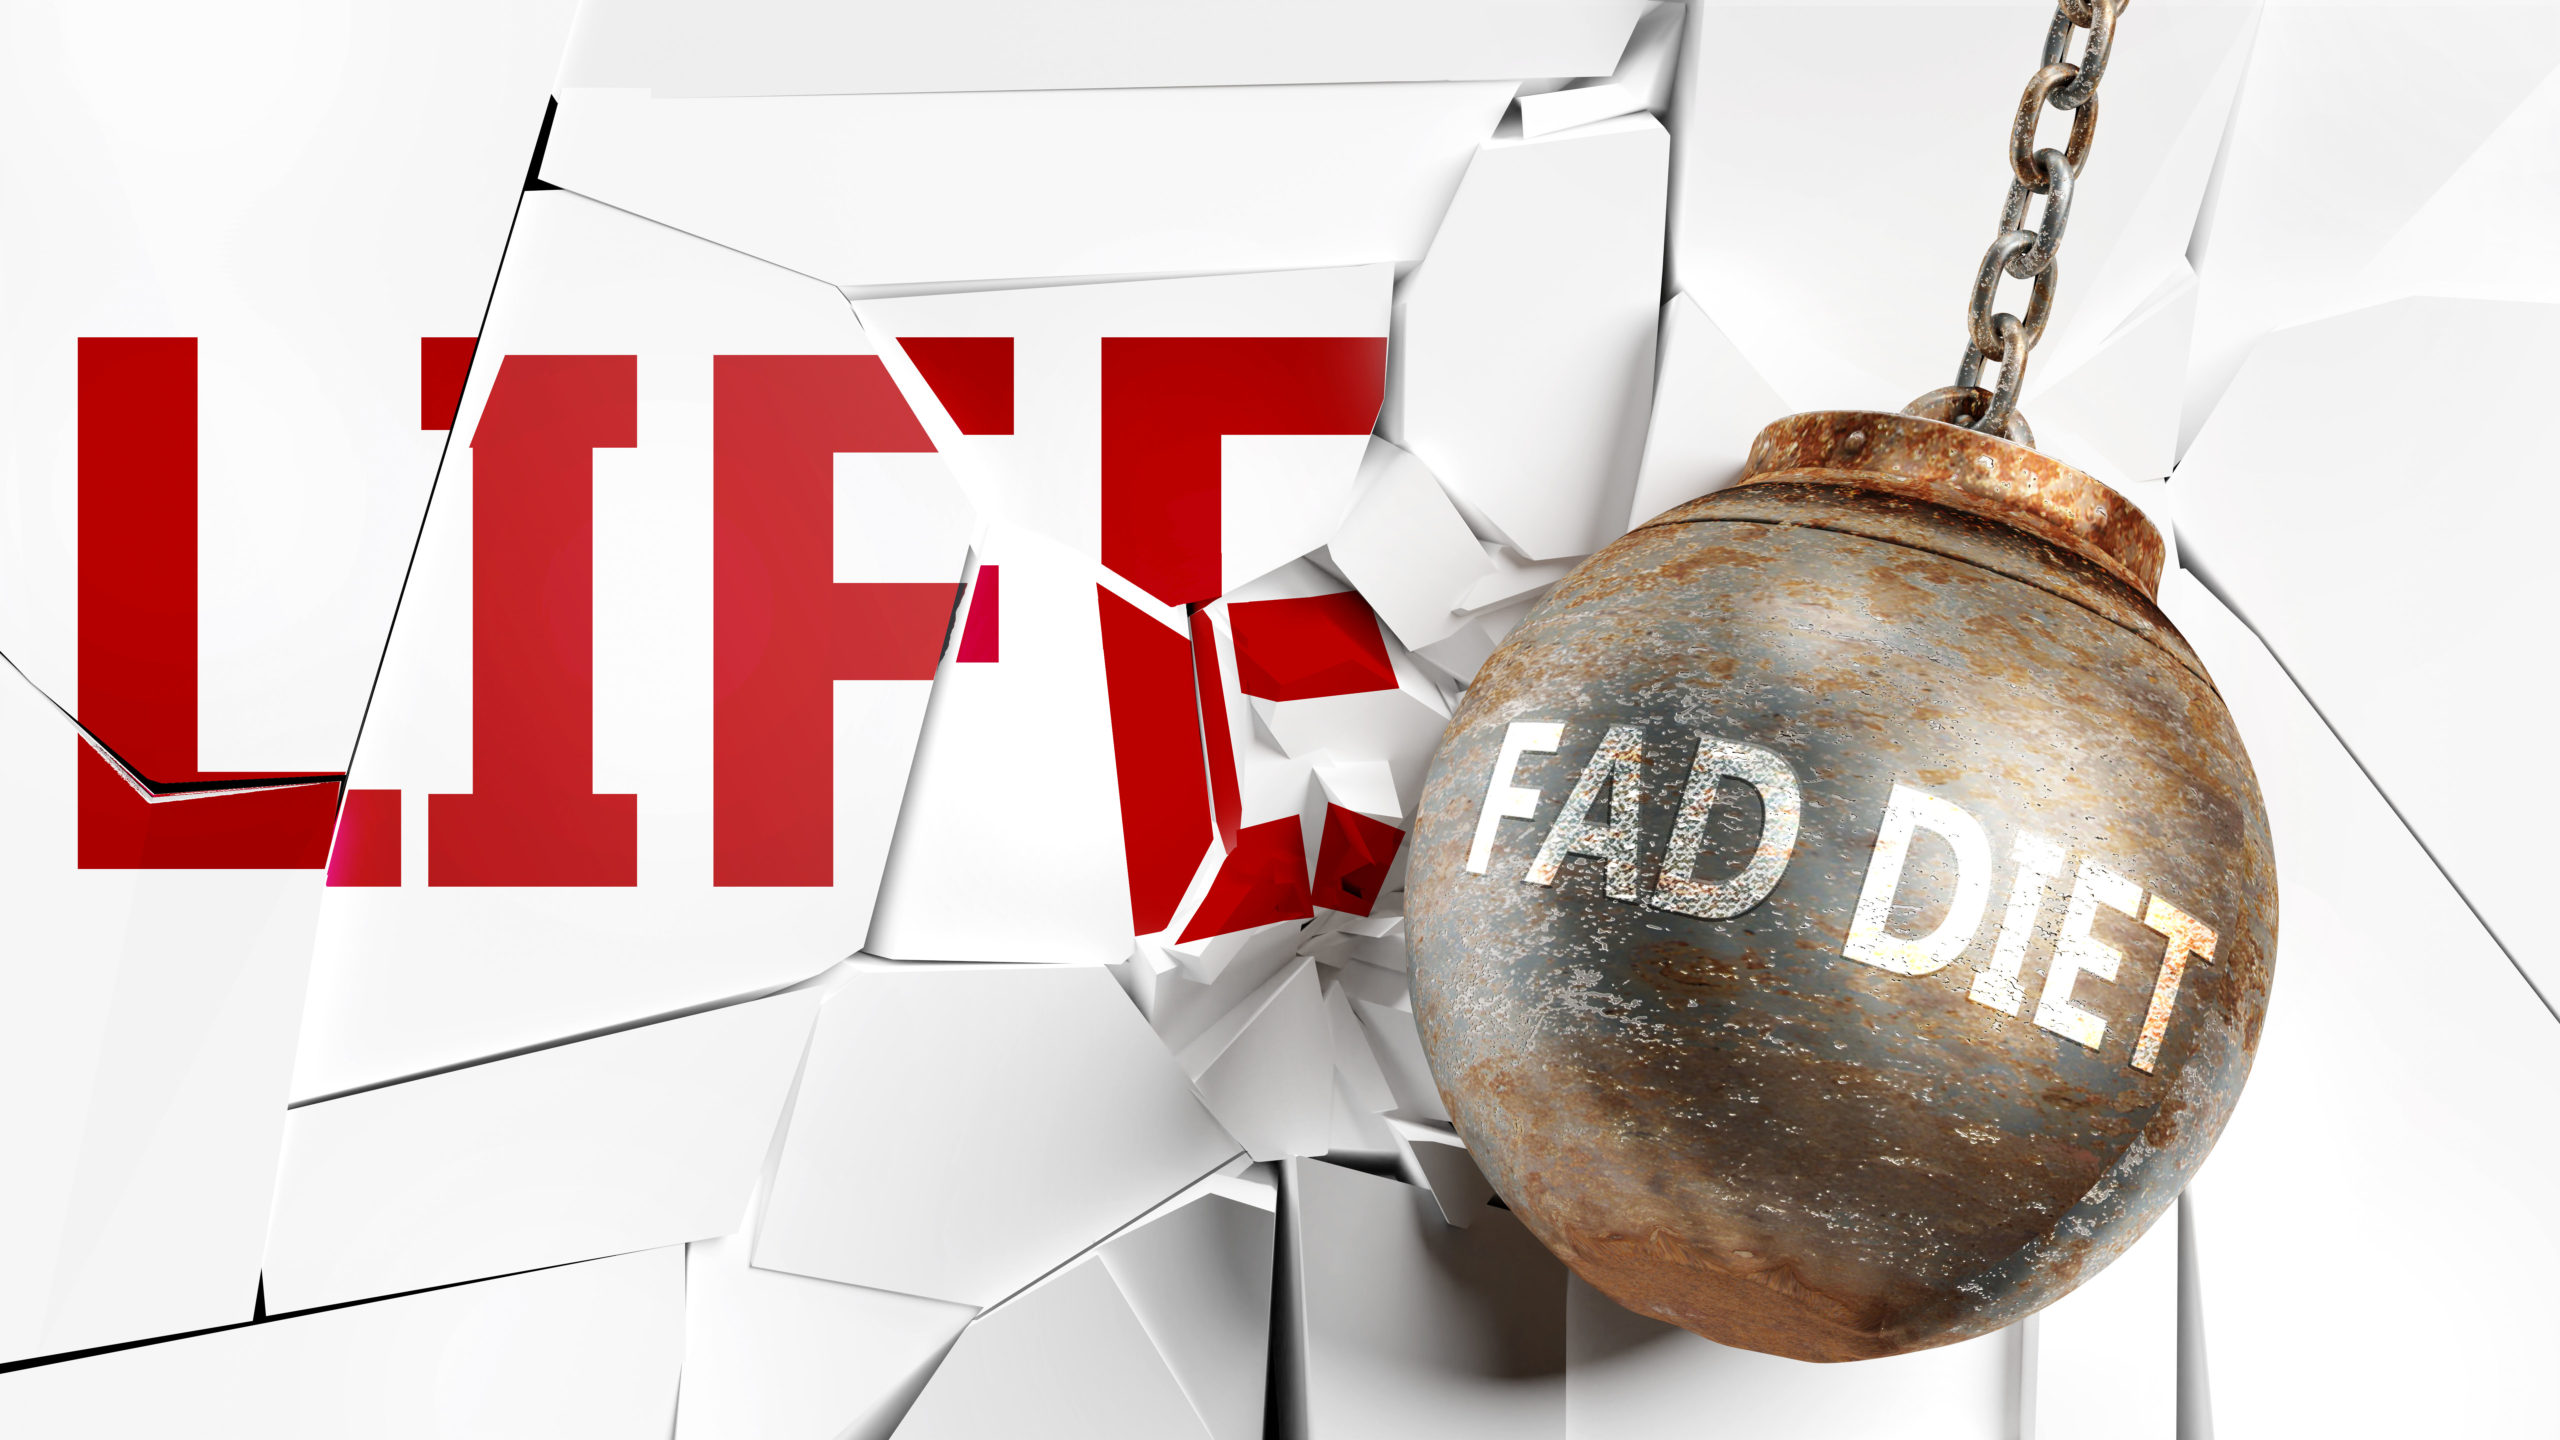 5 Reasons Why Deprivation and Fad Diets Don't Work by Dr. Todd Cadwell, DC